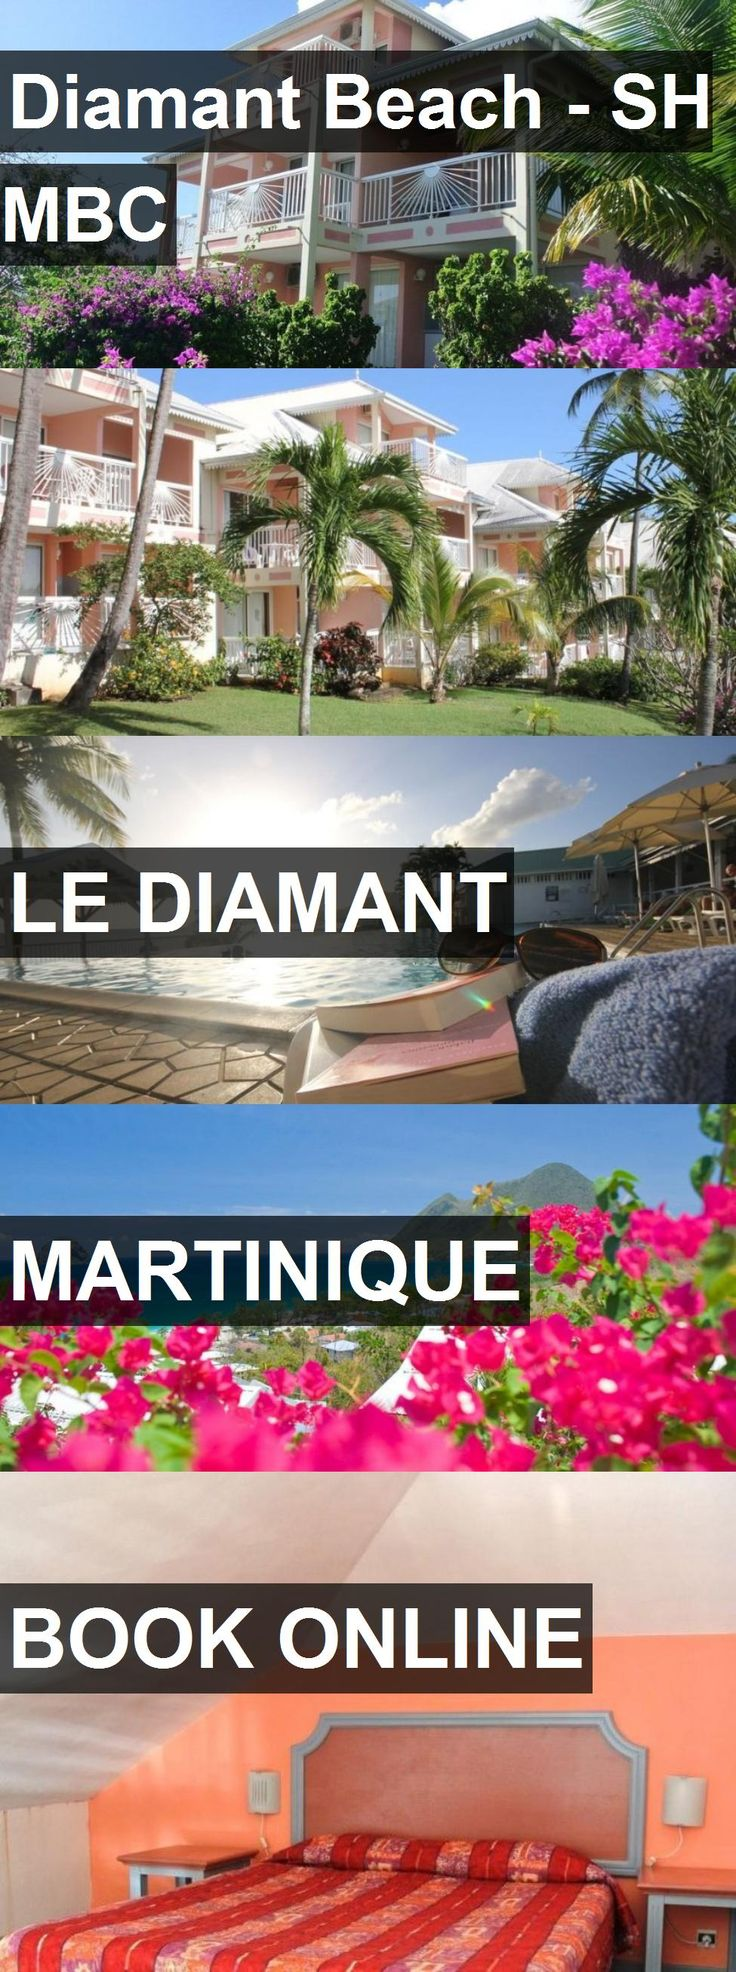 Hotel Diamant Beach - SH MBC in Le Diamant, Martinique. For more information, photos, reviews and best prices please follow the link. #Martinique #LeDiamant #travel #vacation #hotel